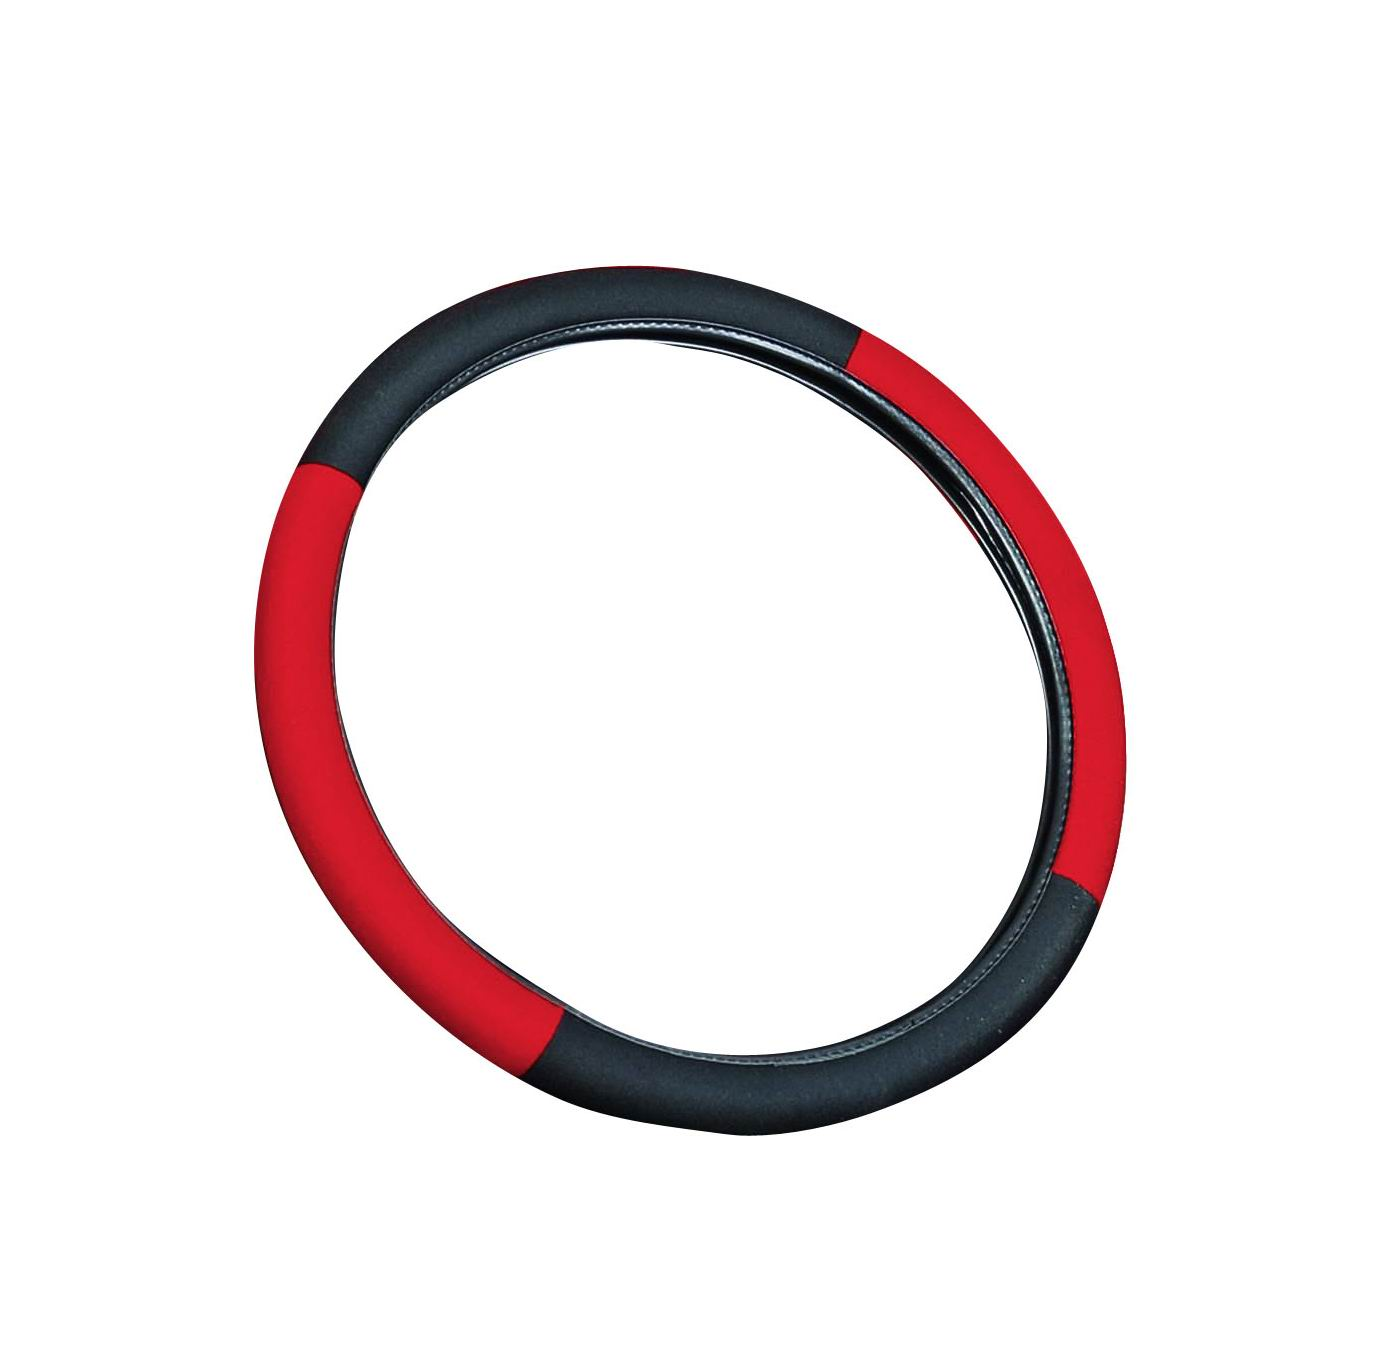 Red 15-inch Universal Steering Wheel Cover